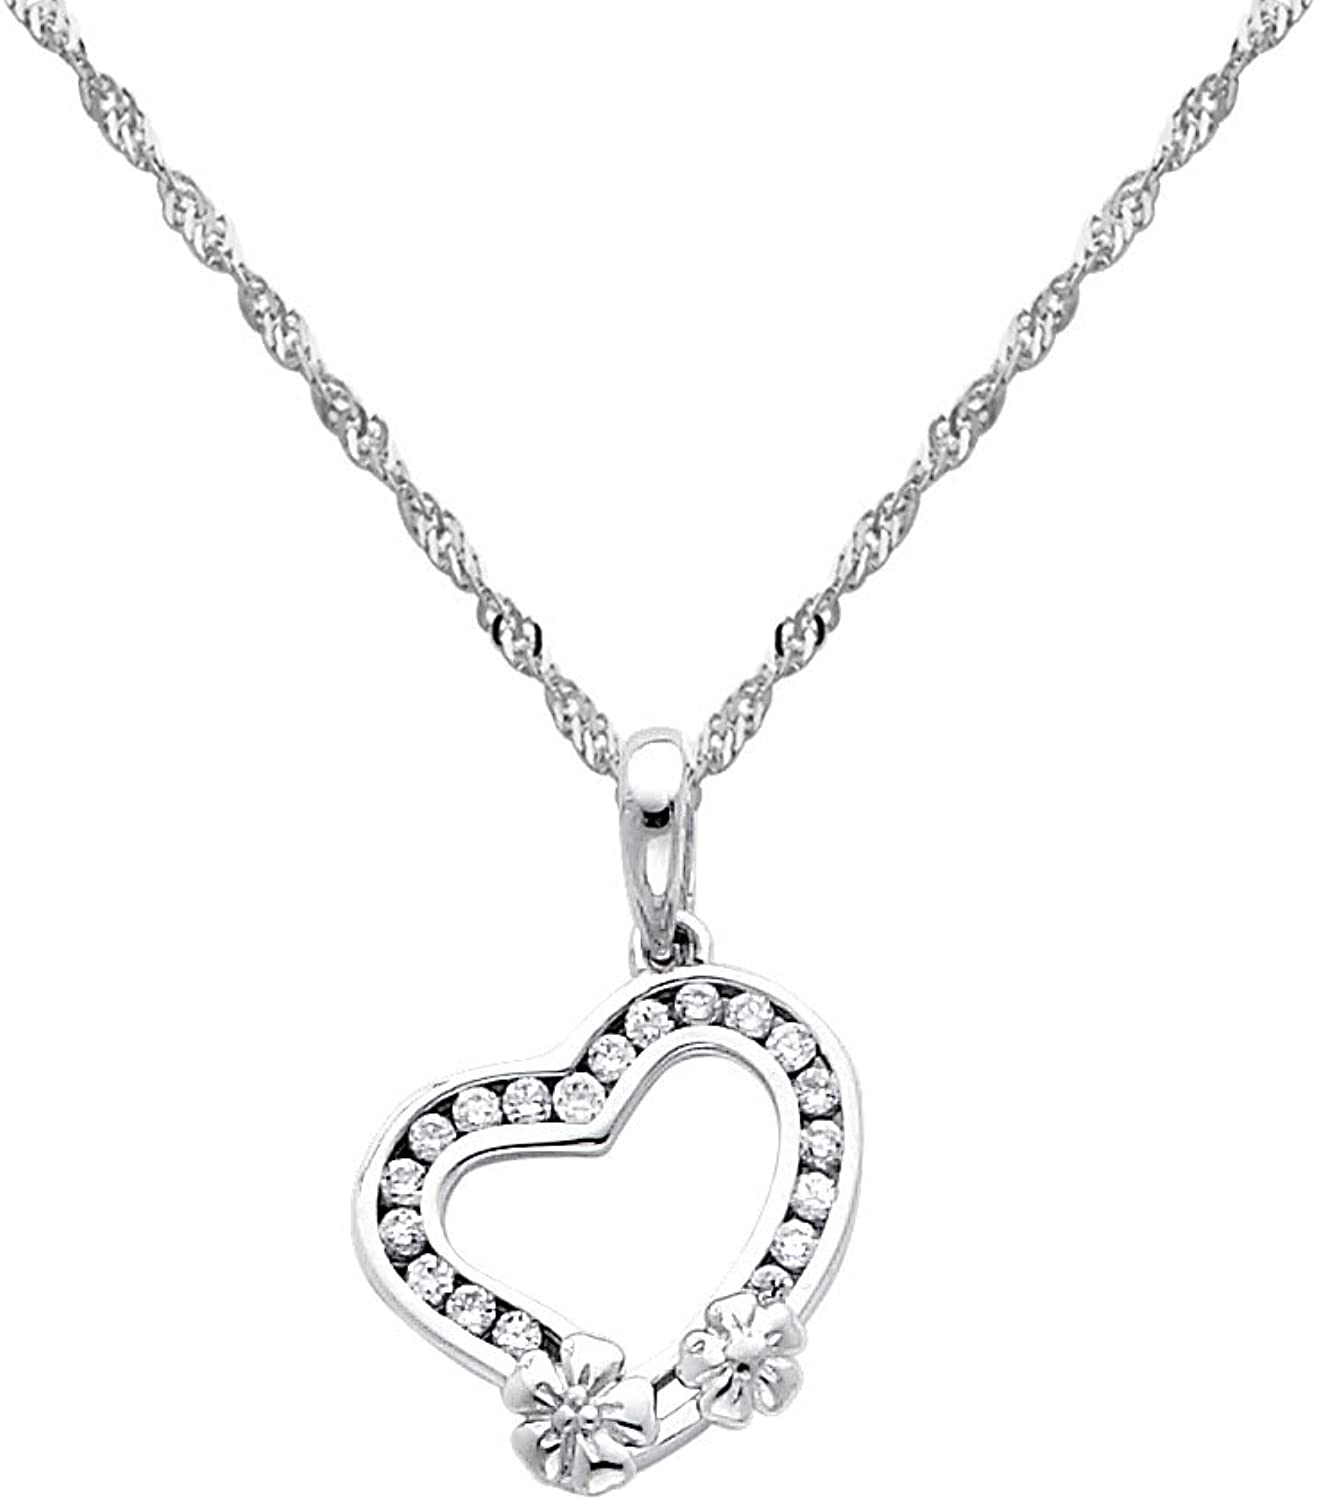 14k White gold Heart CZ Charm Pendant with 1.2mm Singapore Chain Necklace